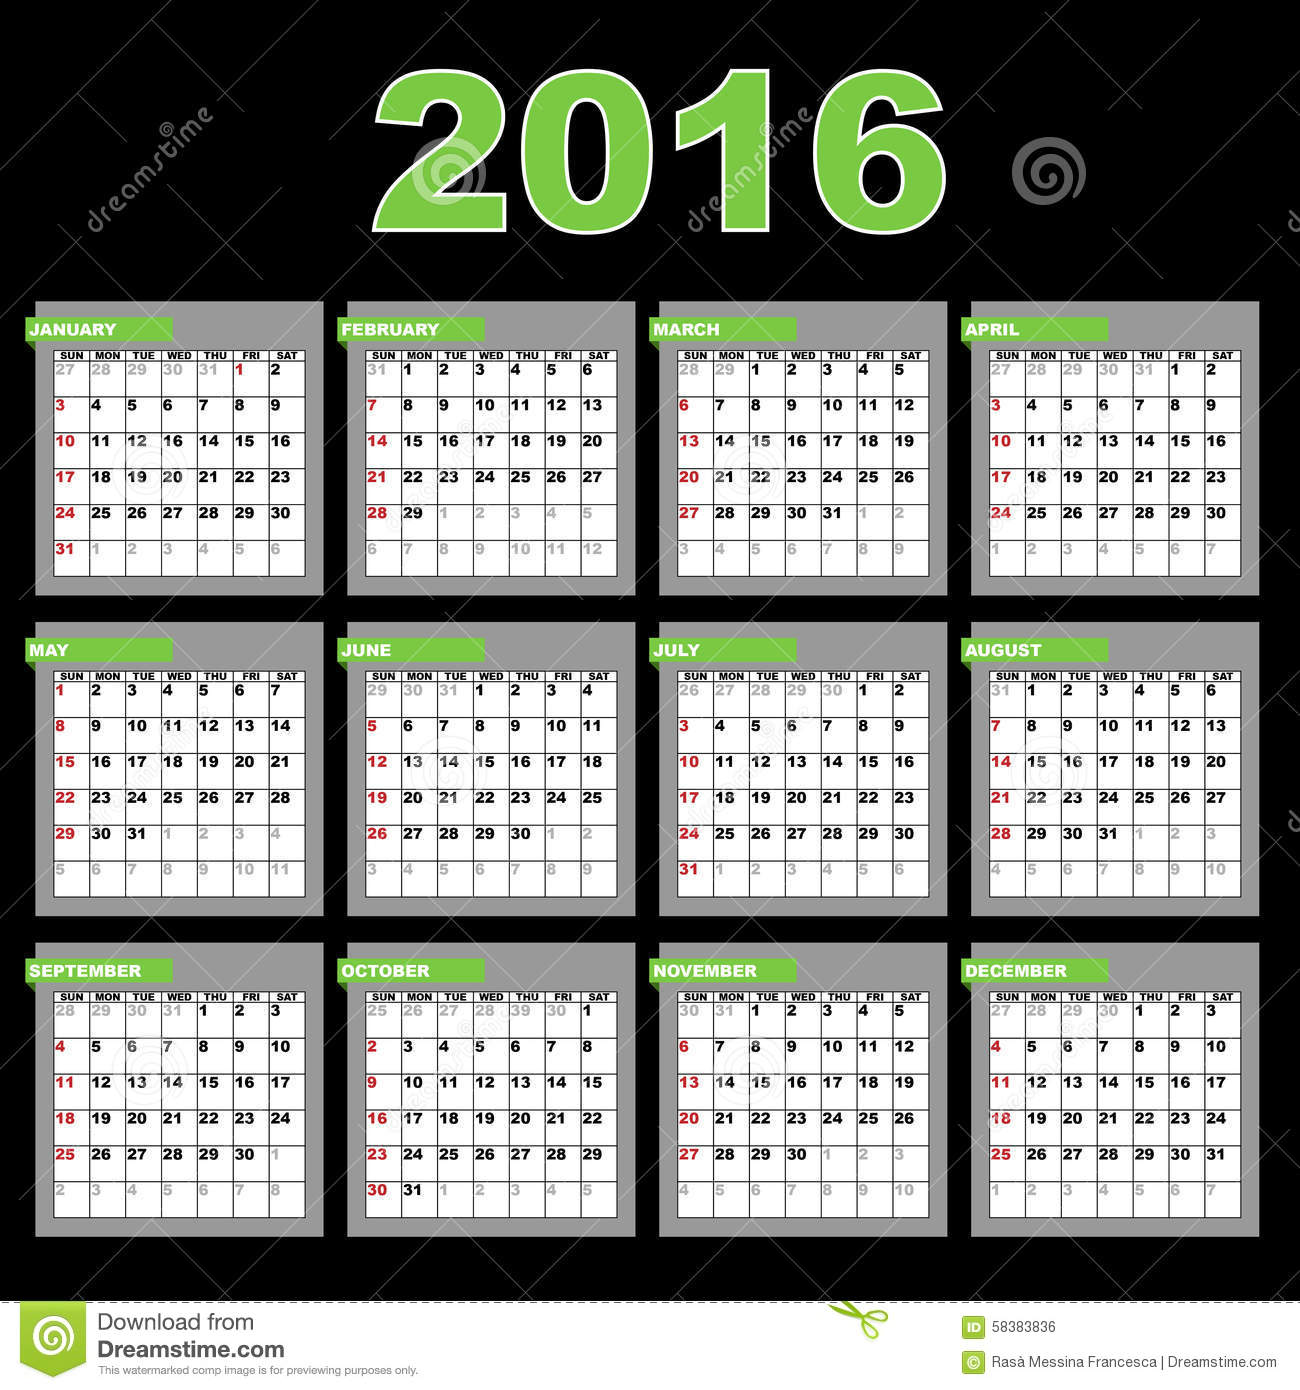 2016 annual calendar template for your design and projects,isolated ...